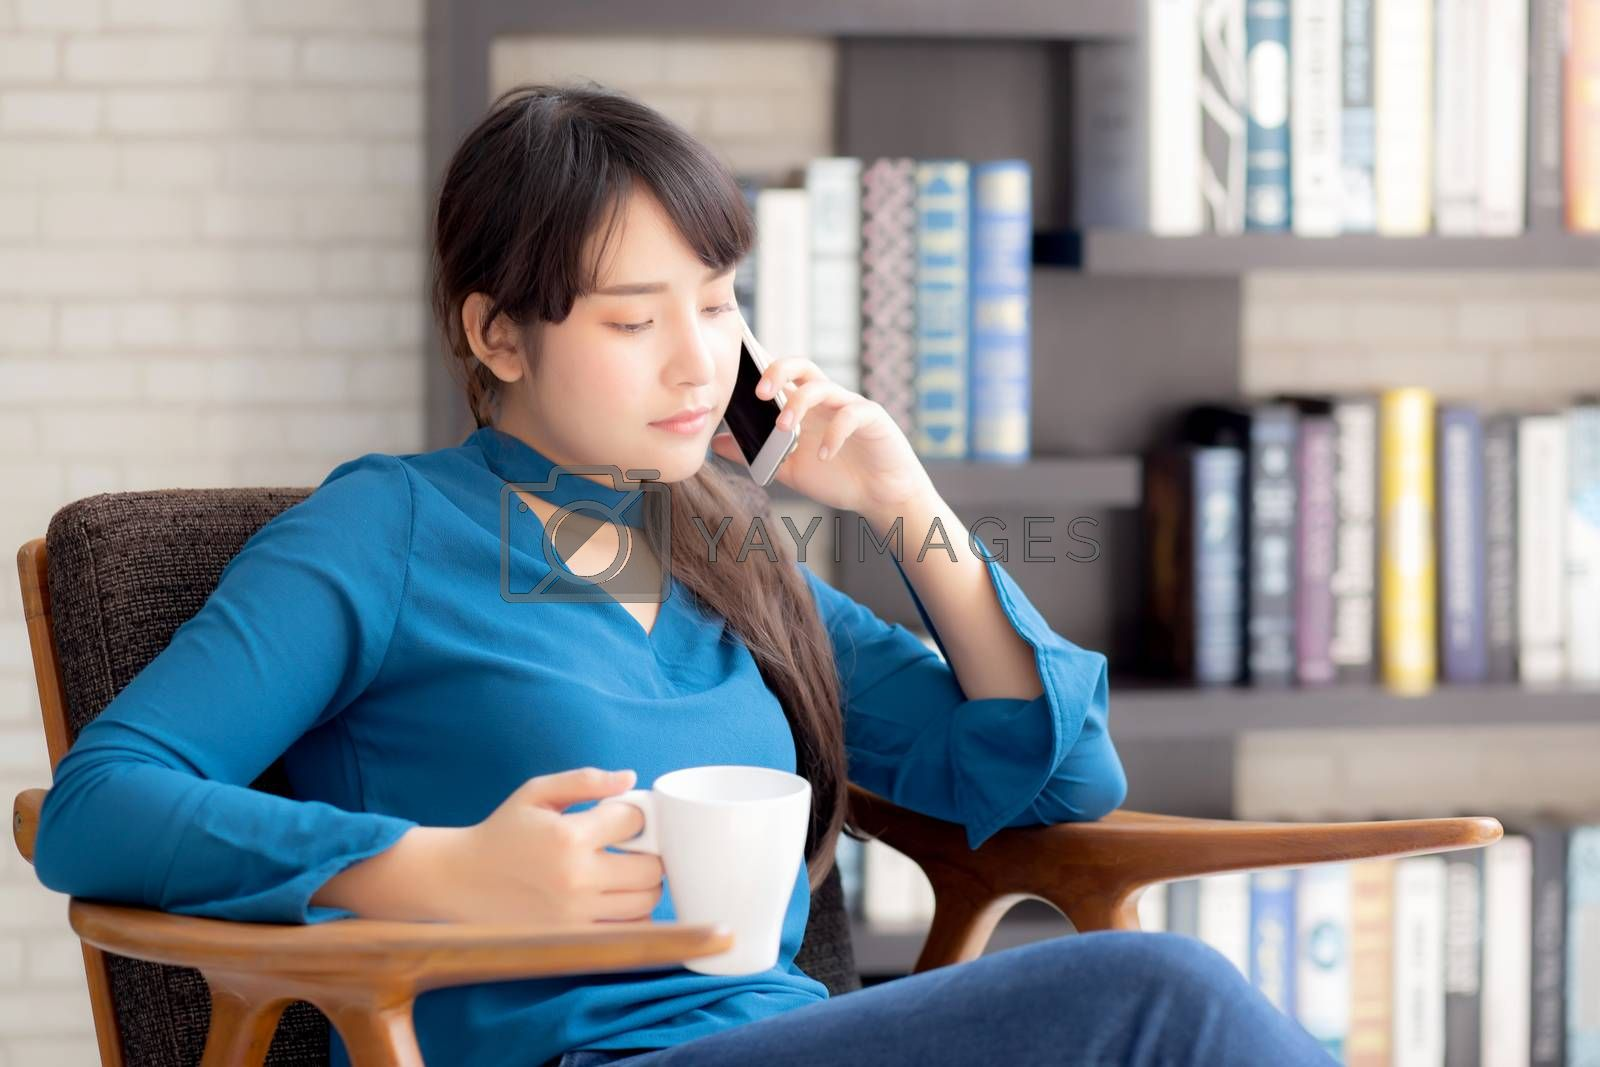 Beautiful portrait young asian woman smiling using mobile smart phone talking enjoy and drink coffee with relax, girl sitting on chair, communication concept.